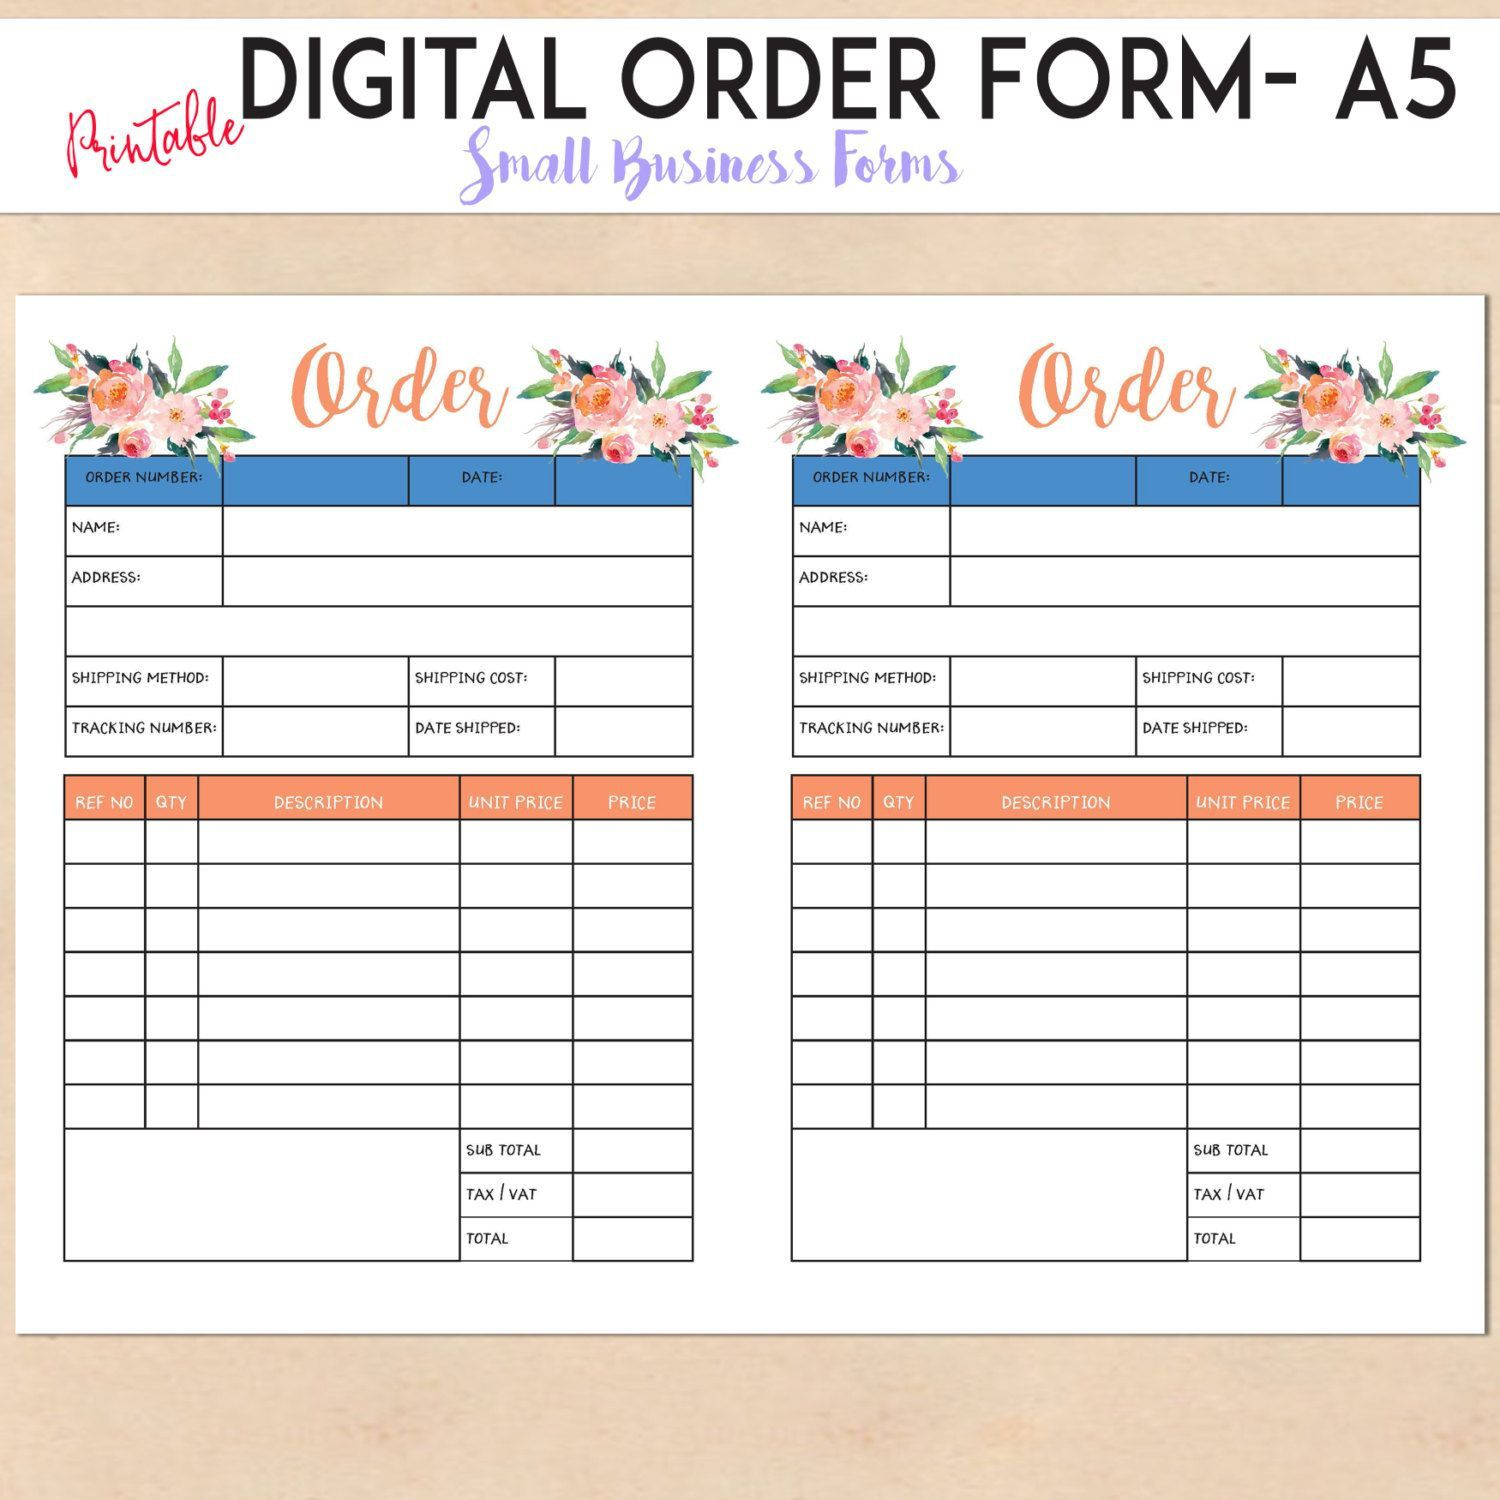 004 Surprising Custom Order Form Template Free Concept  Editable T Shirt TumblerFull